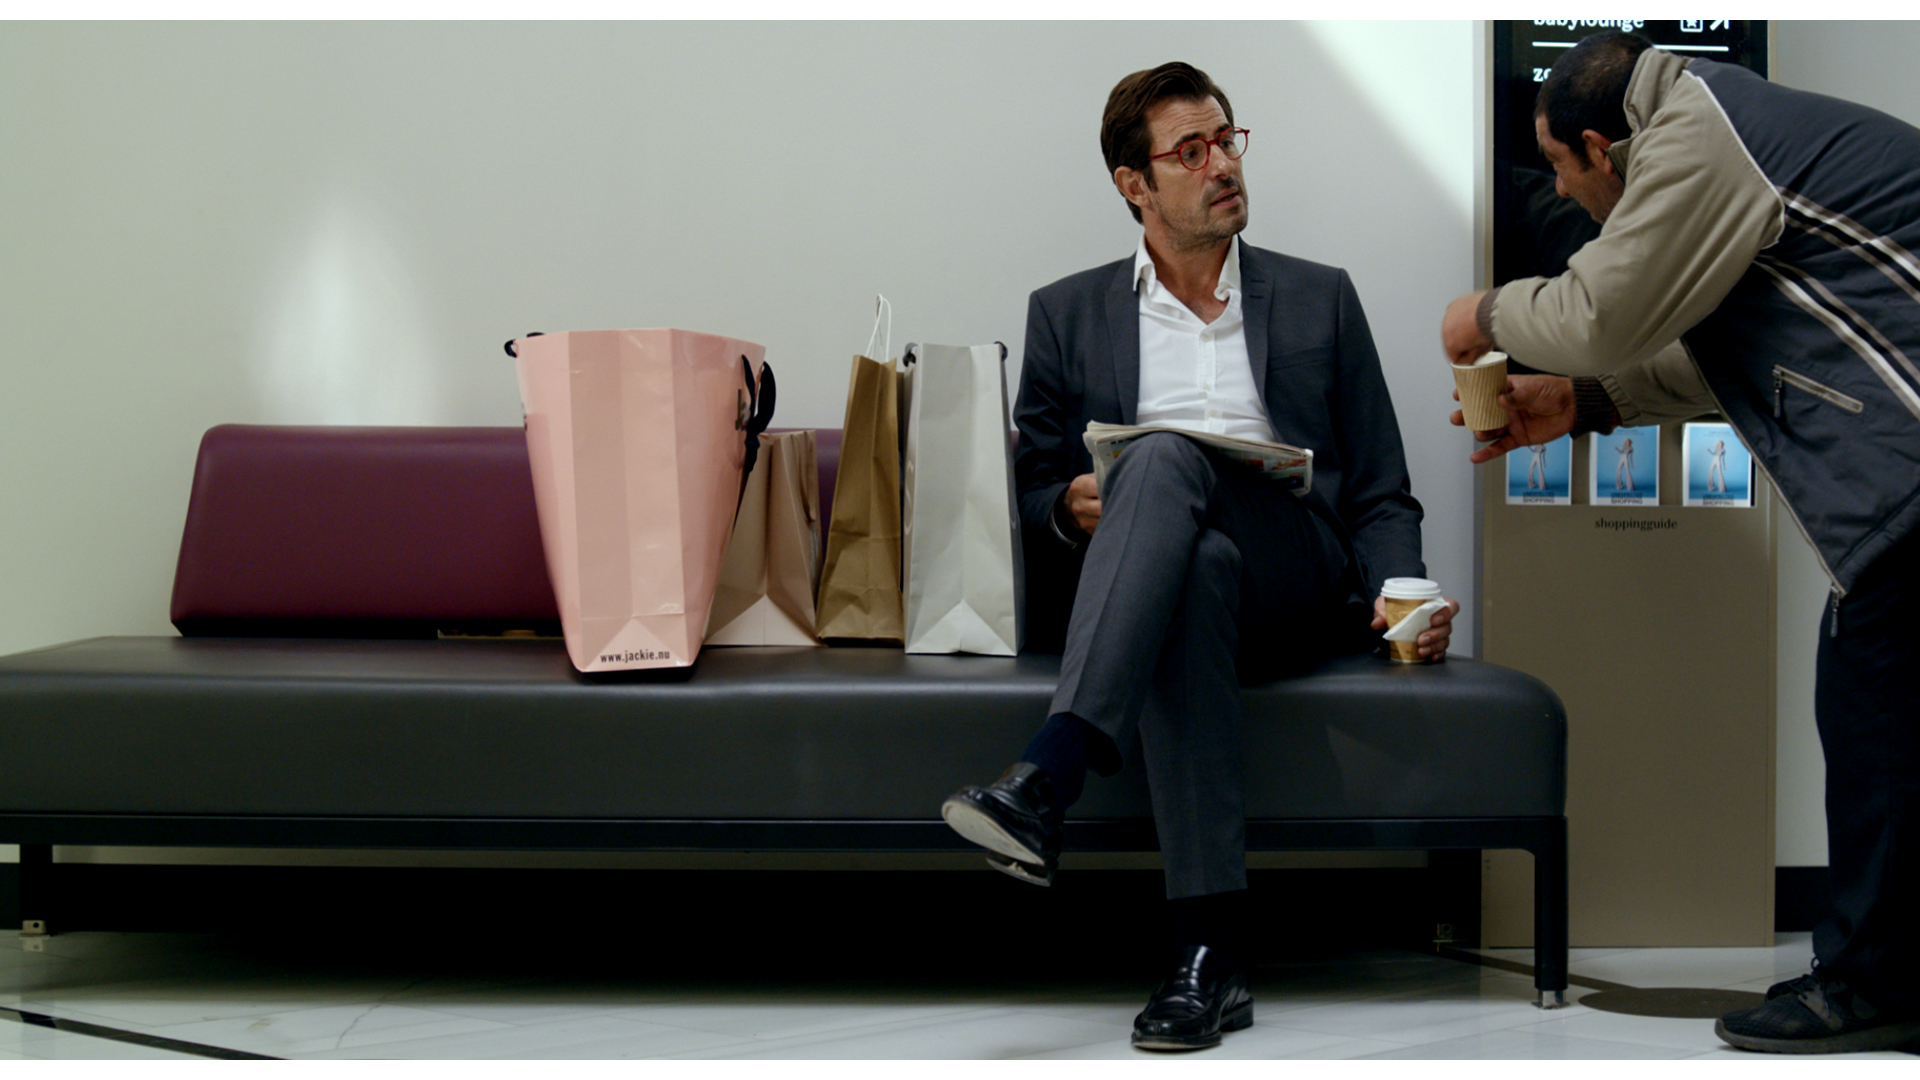 Claes Bing as Christian, source: www.magpictures.com